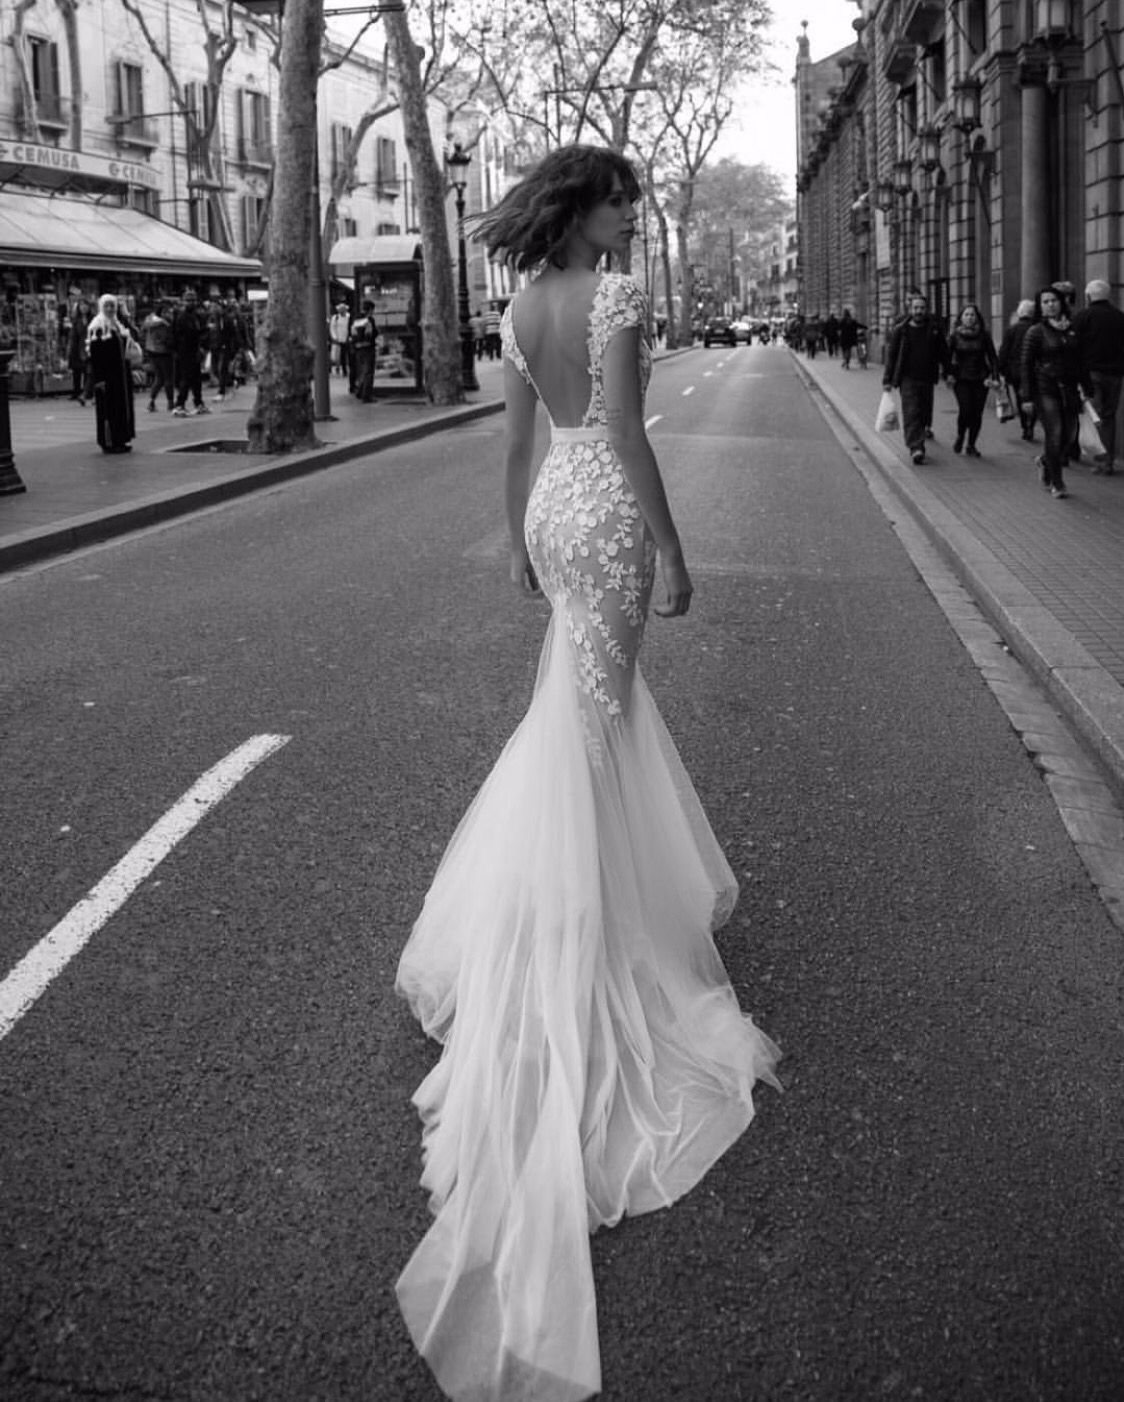 Liz martinez wedding dress  Pin by Angela Huang on Wedding dress u Night gown  Pinterest